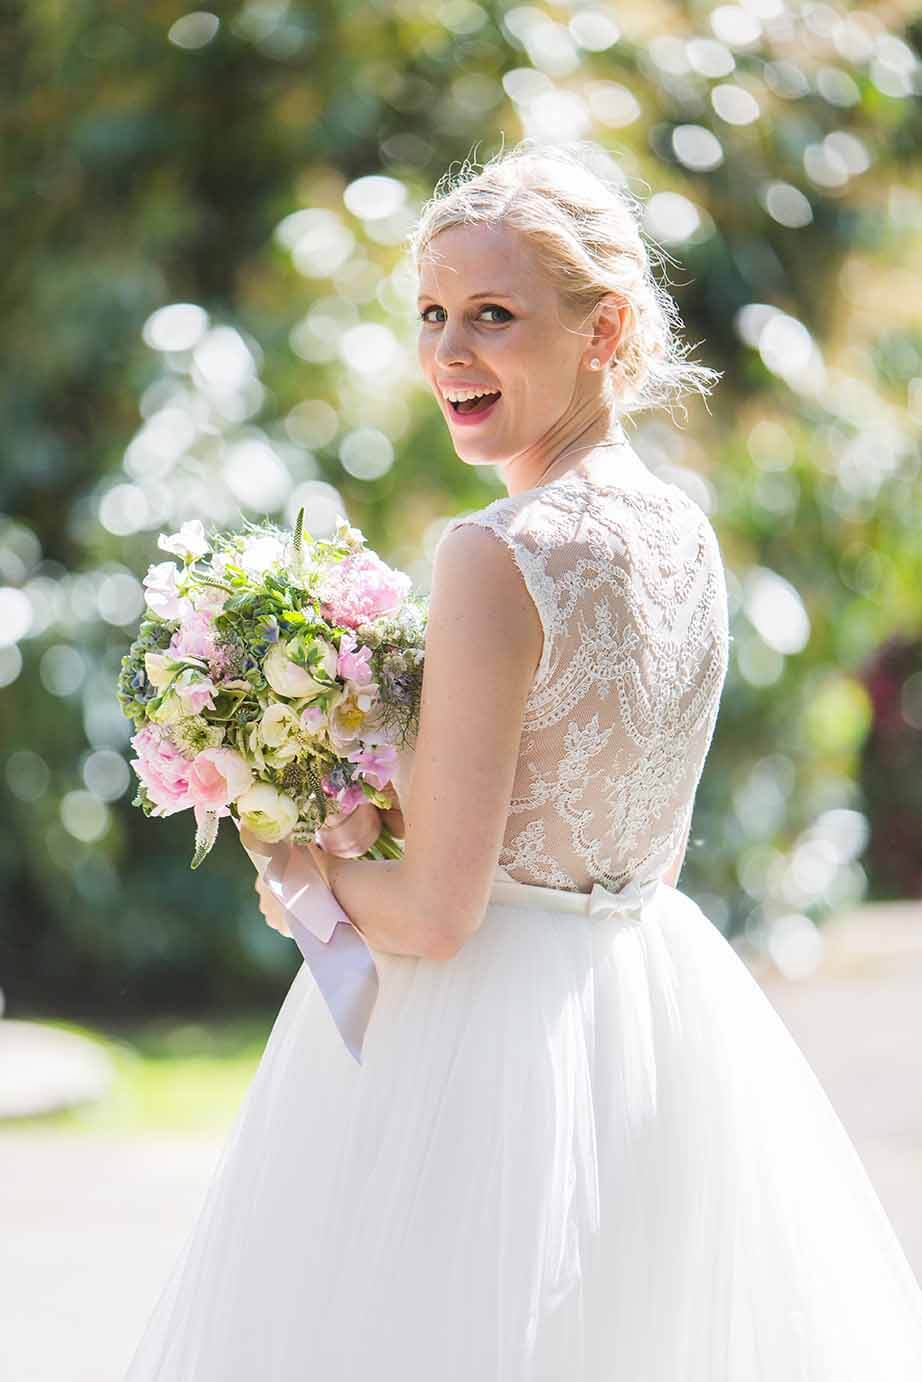 London Wedding Photographer | Natural Wedding Photography | Philippa Sian Photography